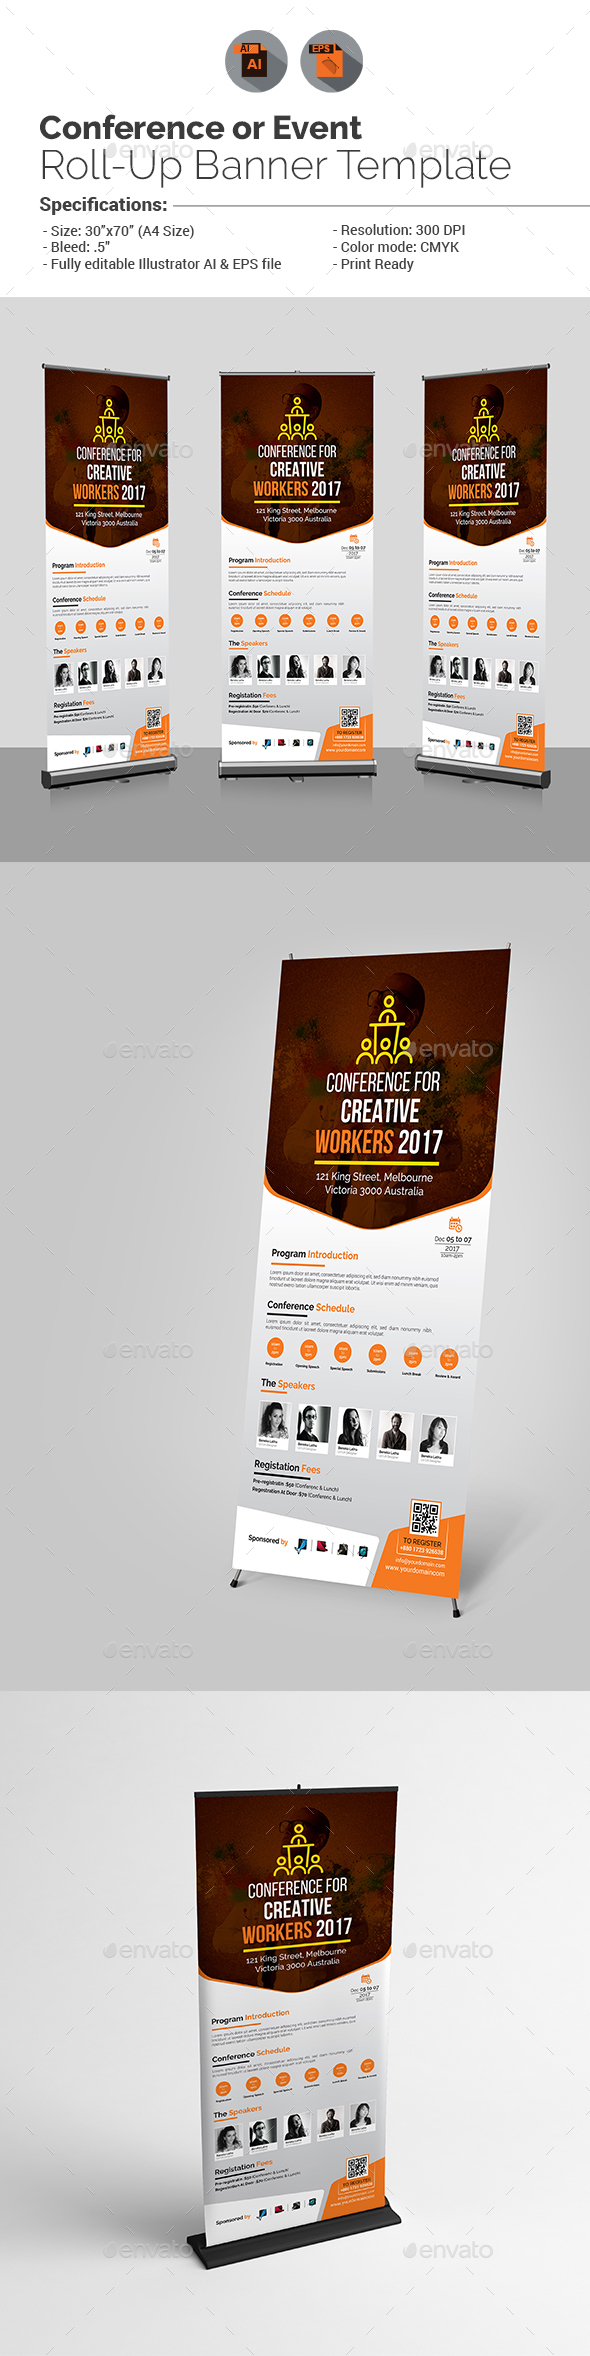 Conference/Event Roll-Up Banner Template - Signage Print Templates